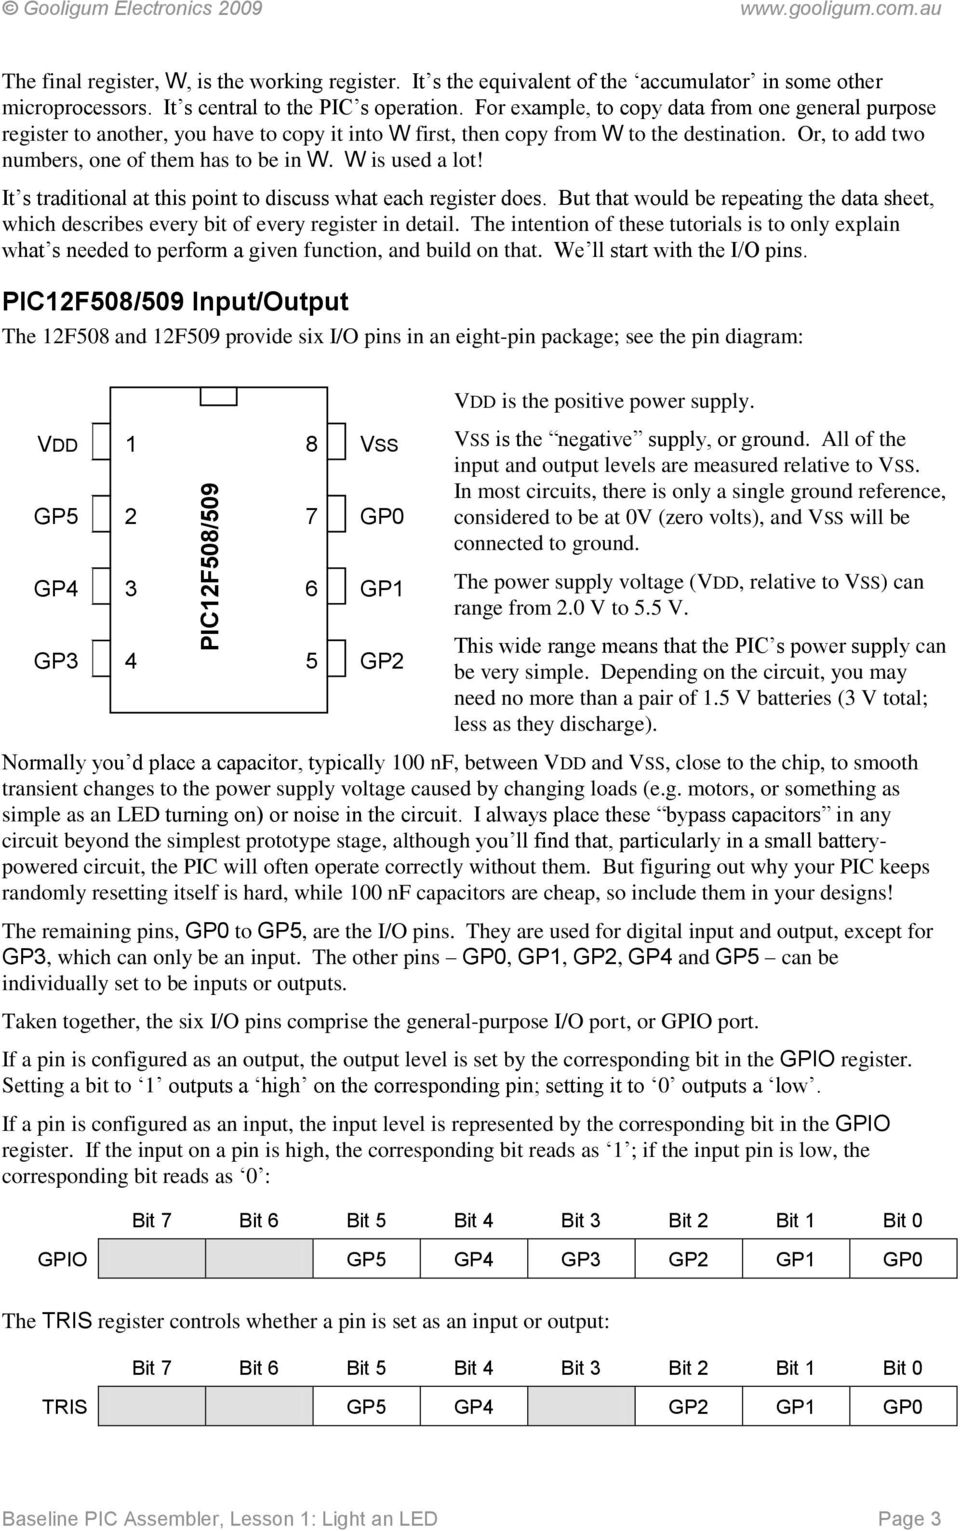 Introduction To Pic Programming Pdf Figure 1 Pic18f452 Led Blinking Circuit Or Add Two Numbers One Of Them Has Be In W